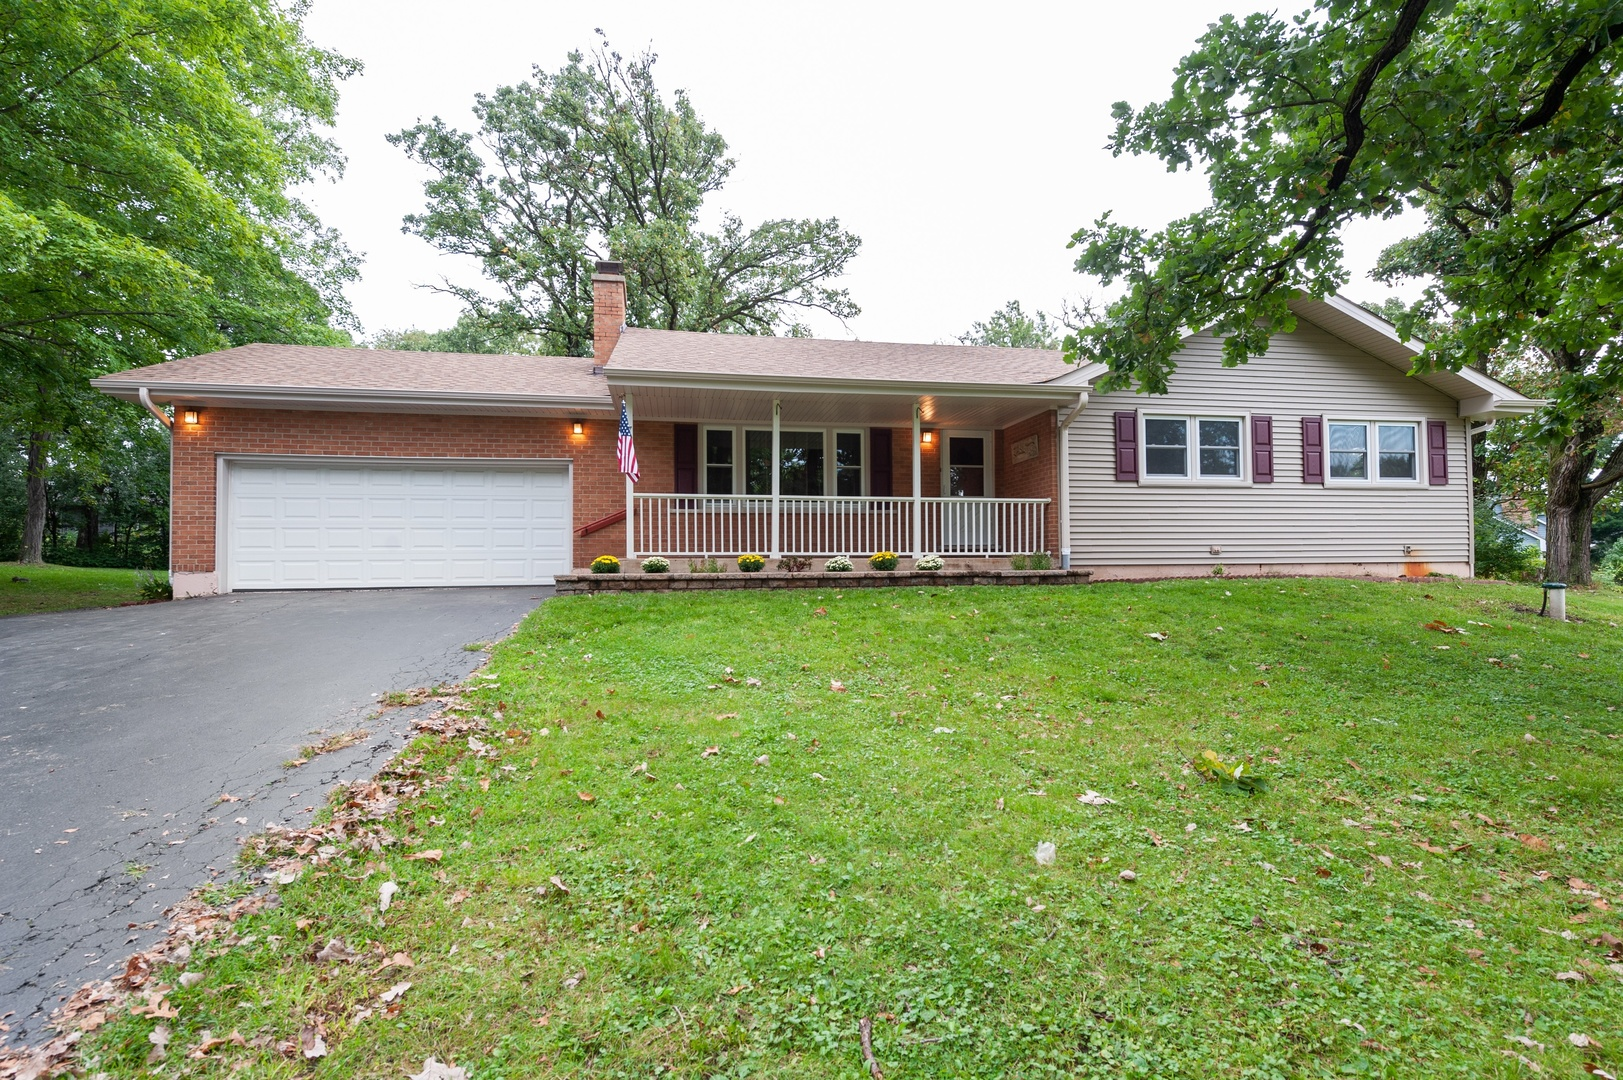 Photo for 701 St Johns Road, Woodstock, IL 60098 (MLS # 10517431)